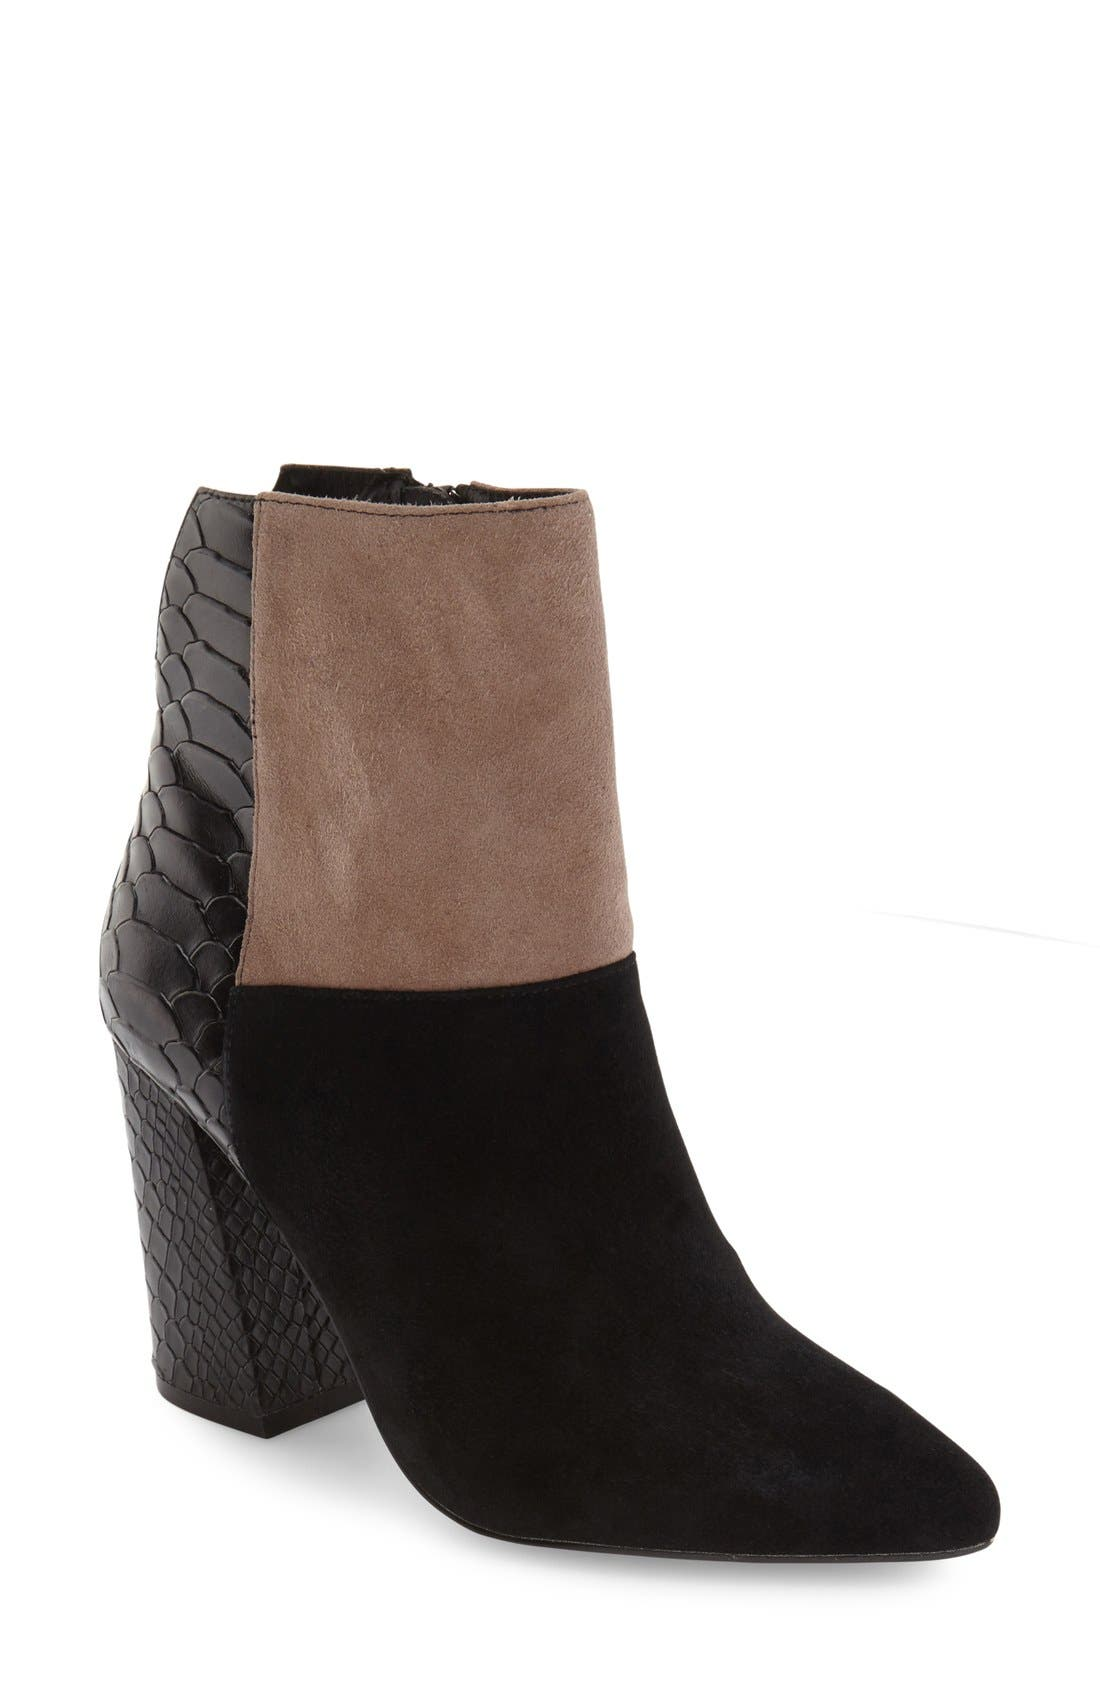 'Santorini' Colorblock Bootie,                             Main thumbnail 1, color,                             001